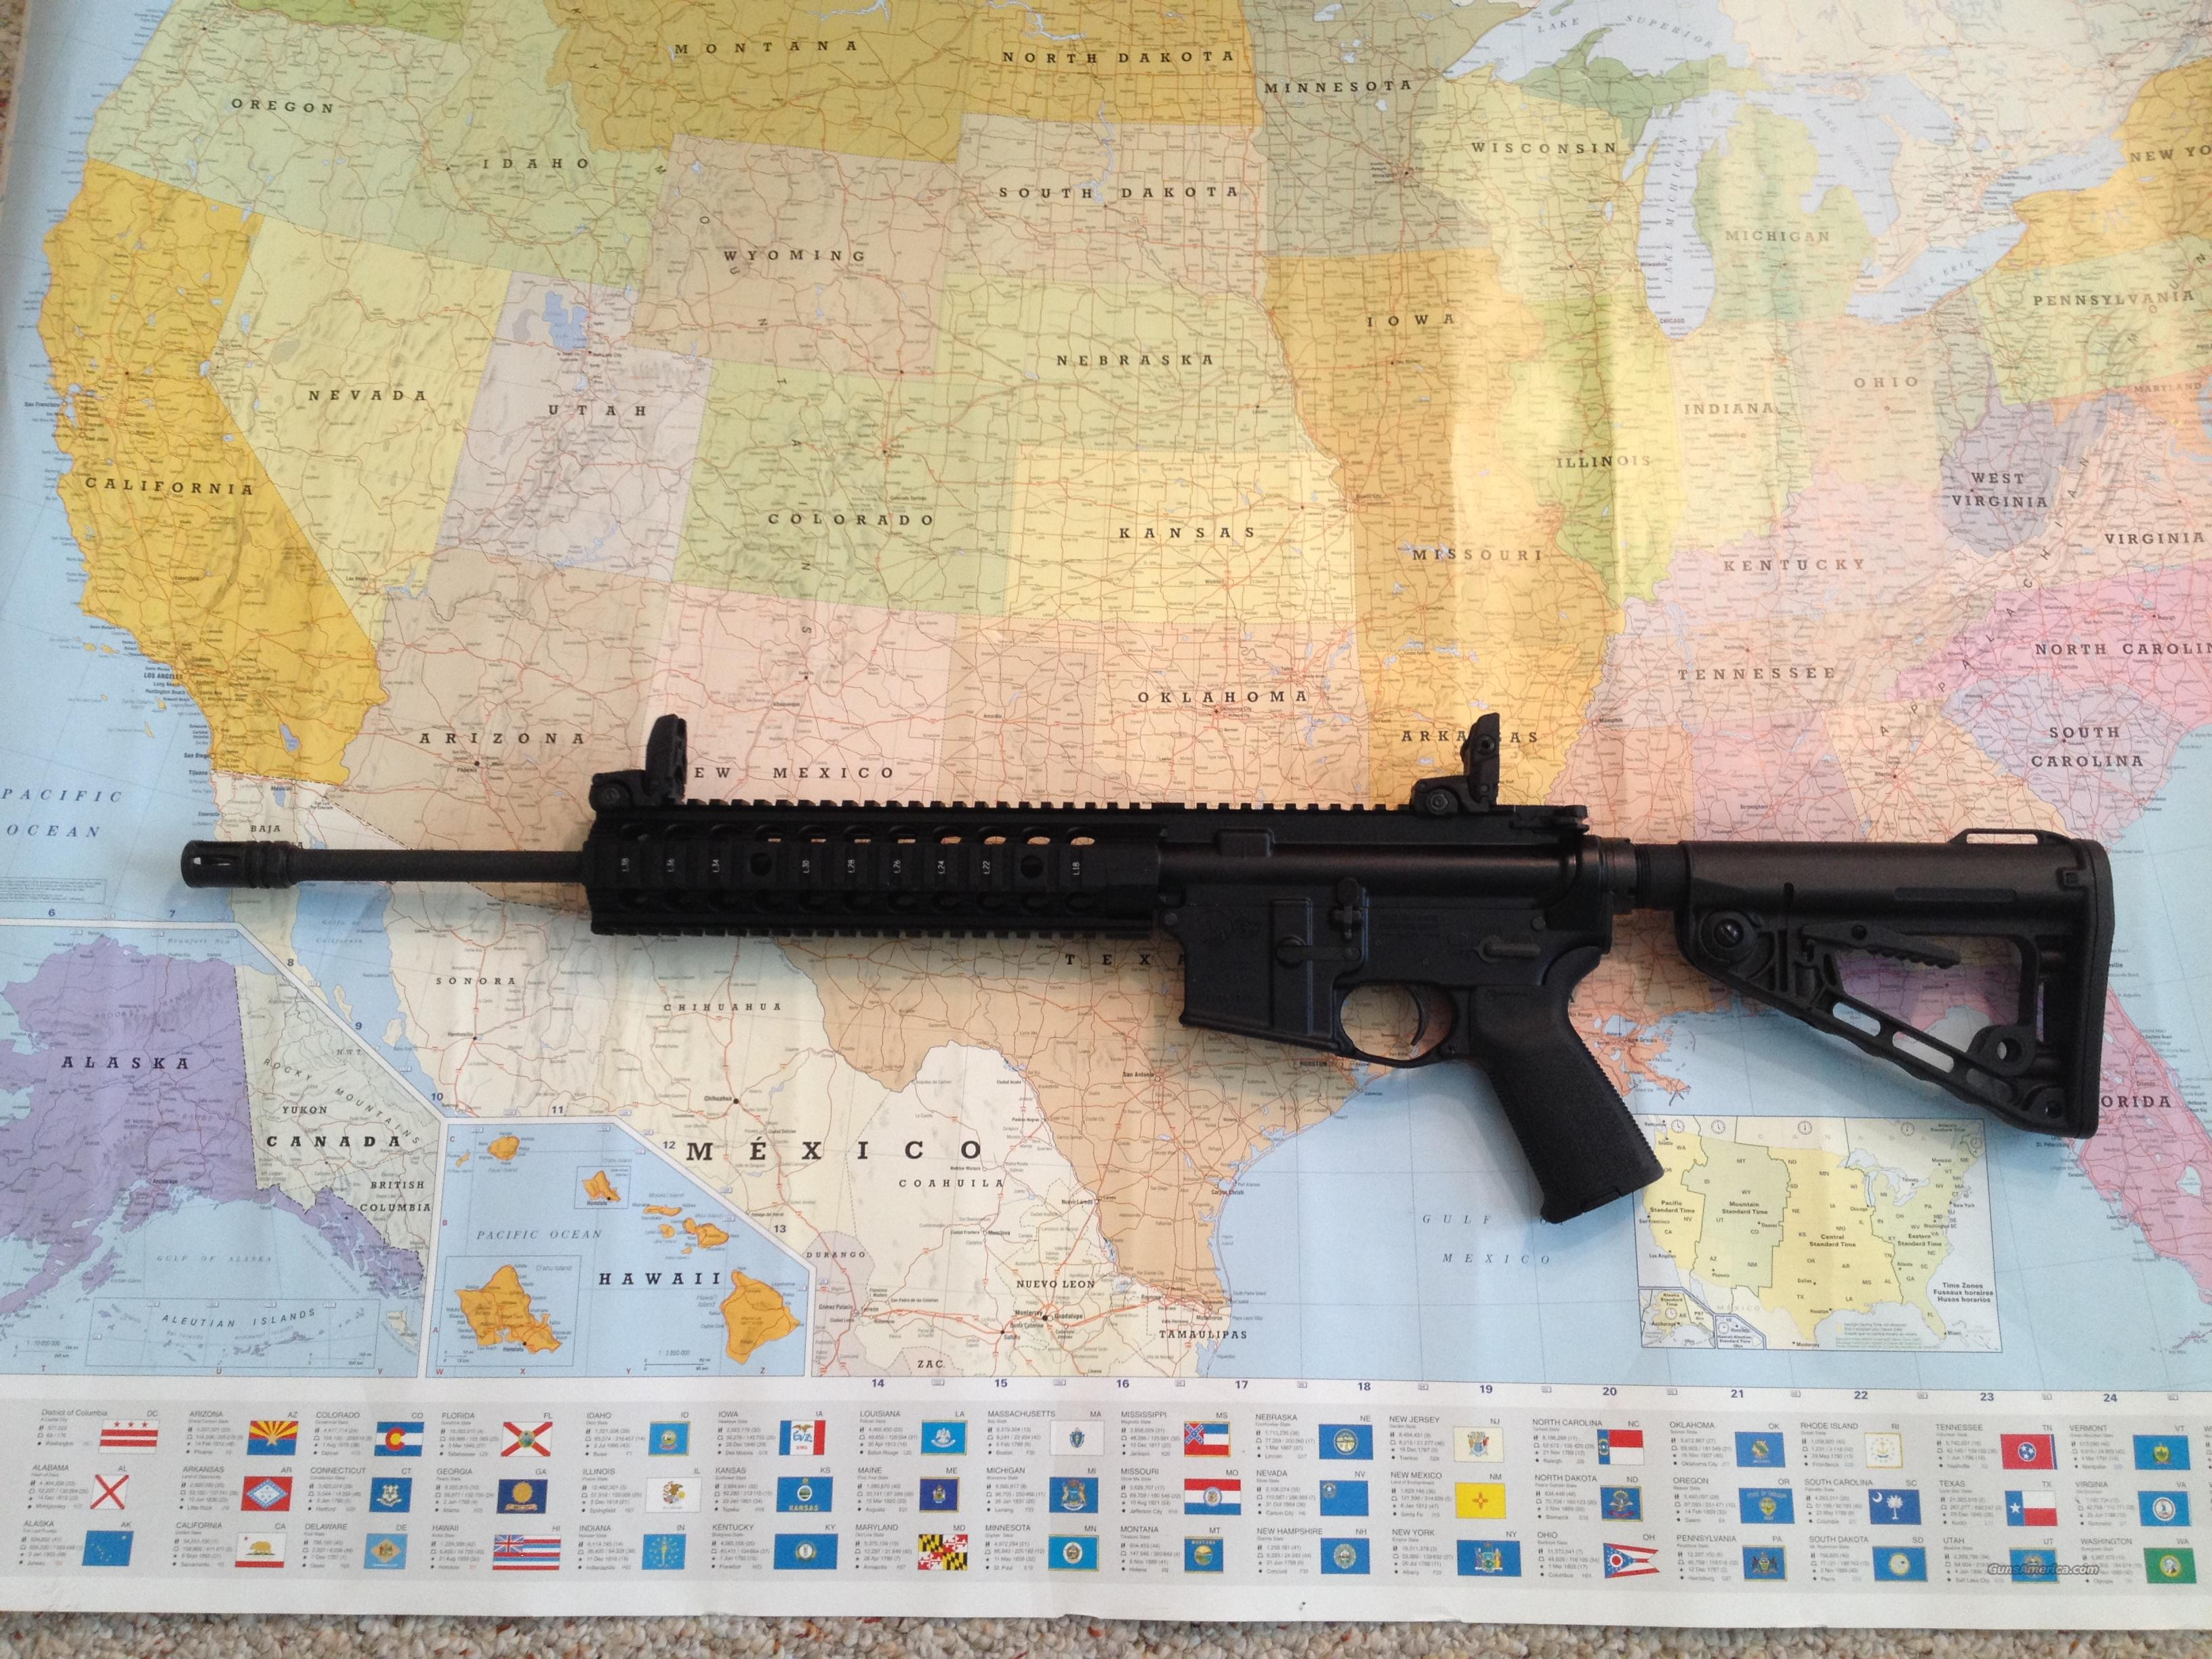 COLT LT6720R M4 CARBINE AR-15 TALO LIMITED EDITION  Guns > Rifles > Colt Military/Tactical Rifles